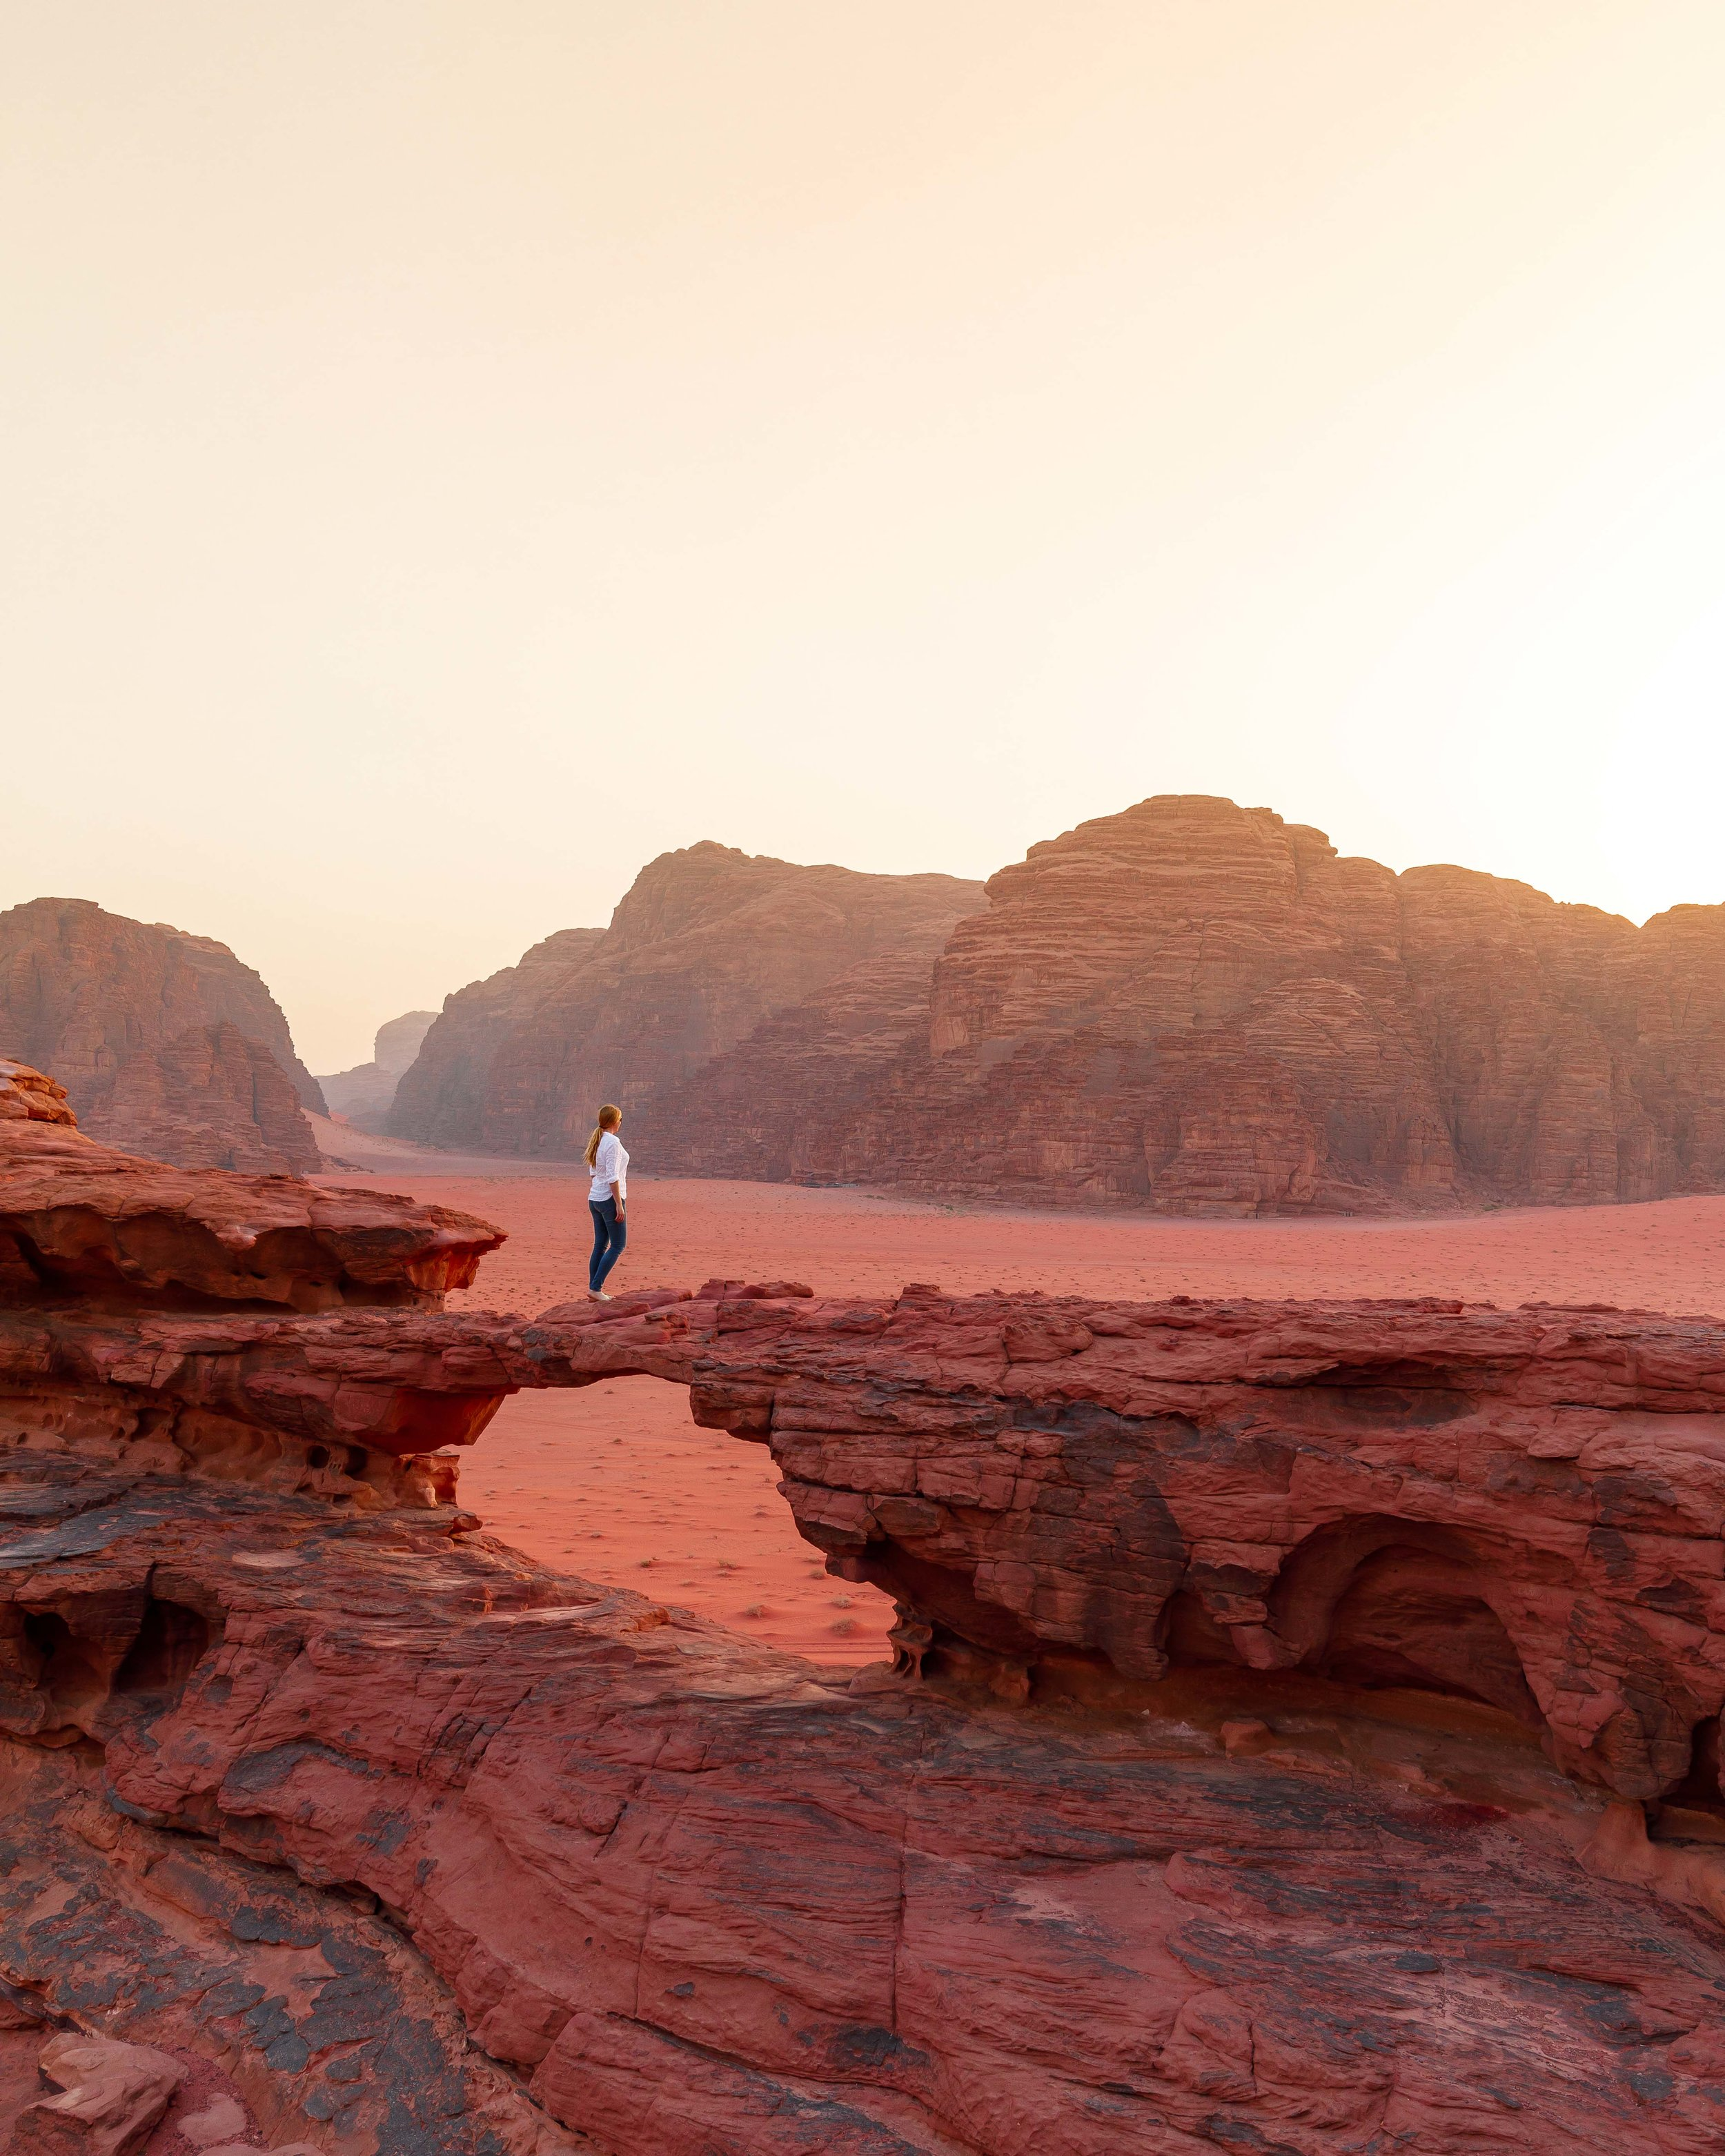 Instagrammable spots in Jordan - Little Rock Bridge, Wadi Rum